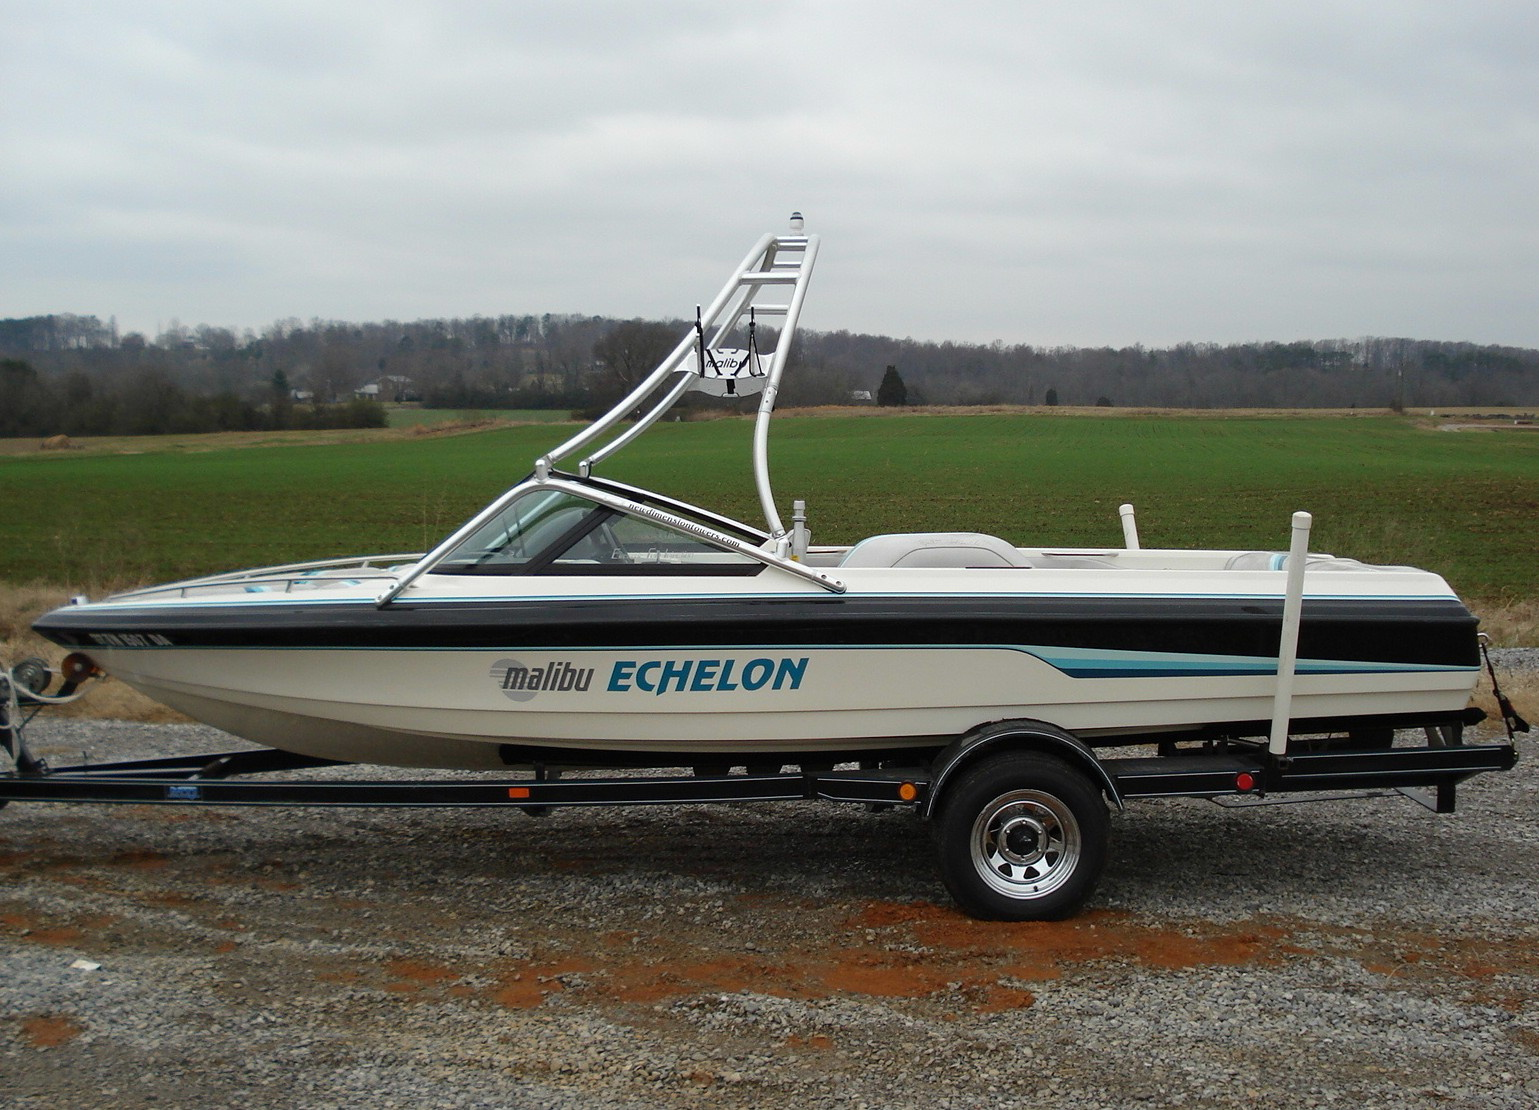 main view of 93 - 98 malibu echelon wakeboard boat with new dimension towers